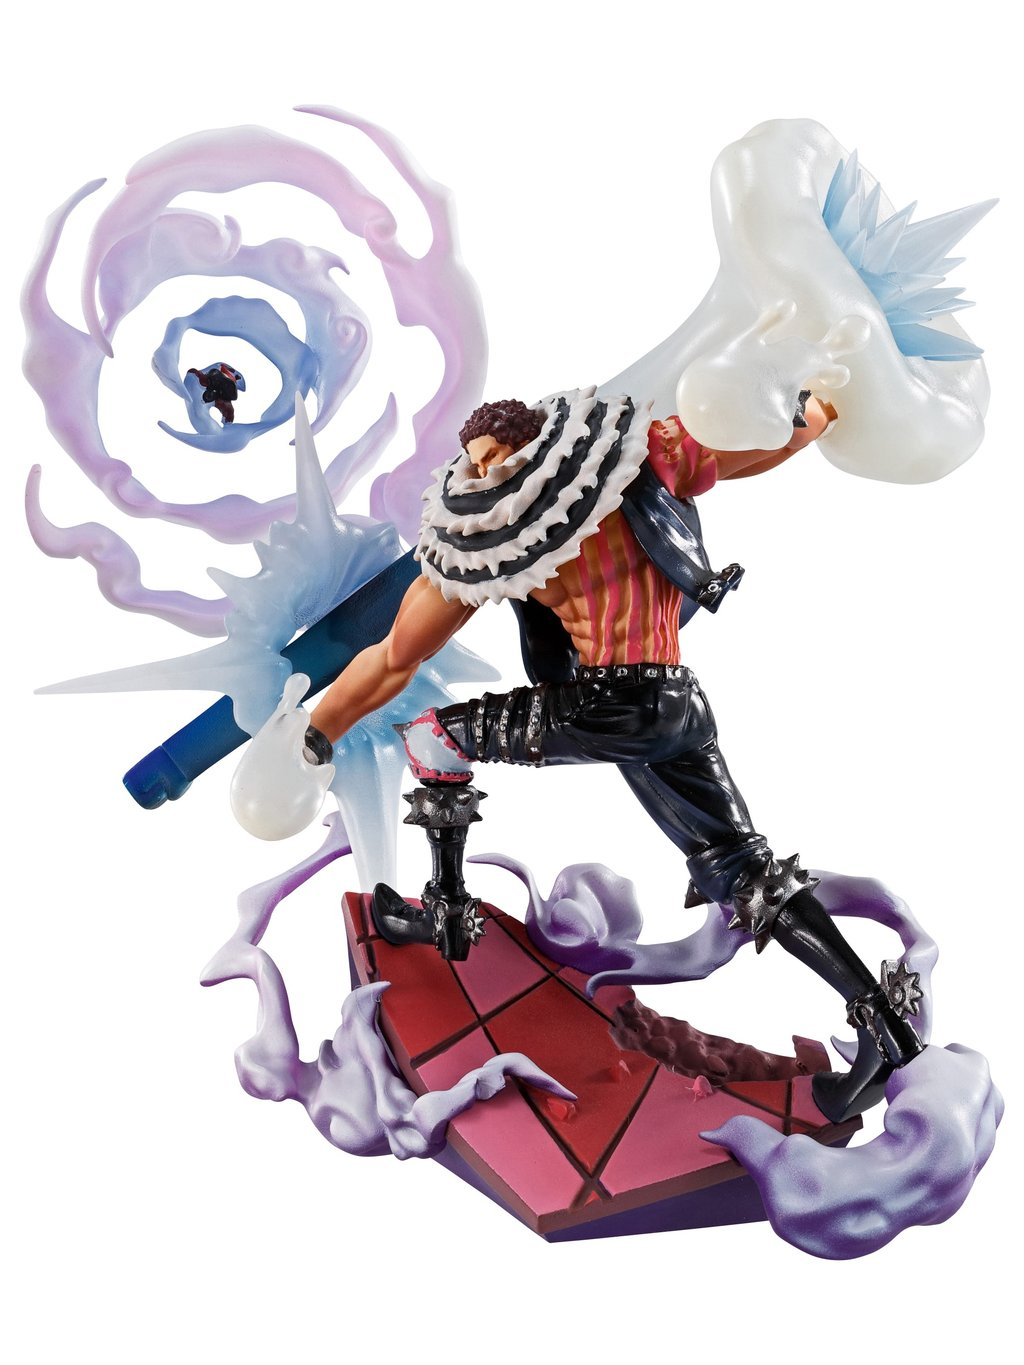 One Piece - Logbox Re Birth - Megahouse - Cake Island - 4 Vignette